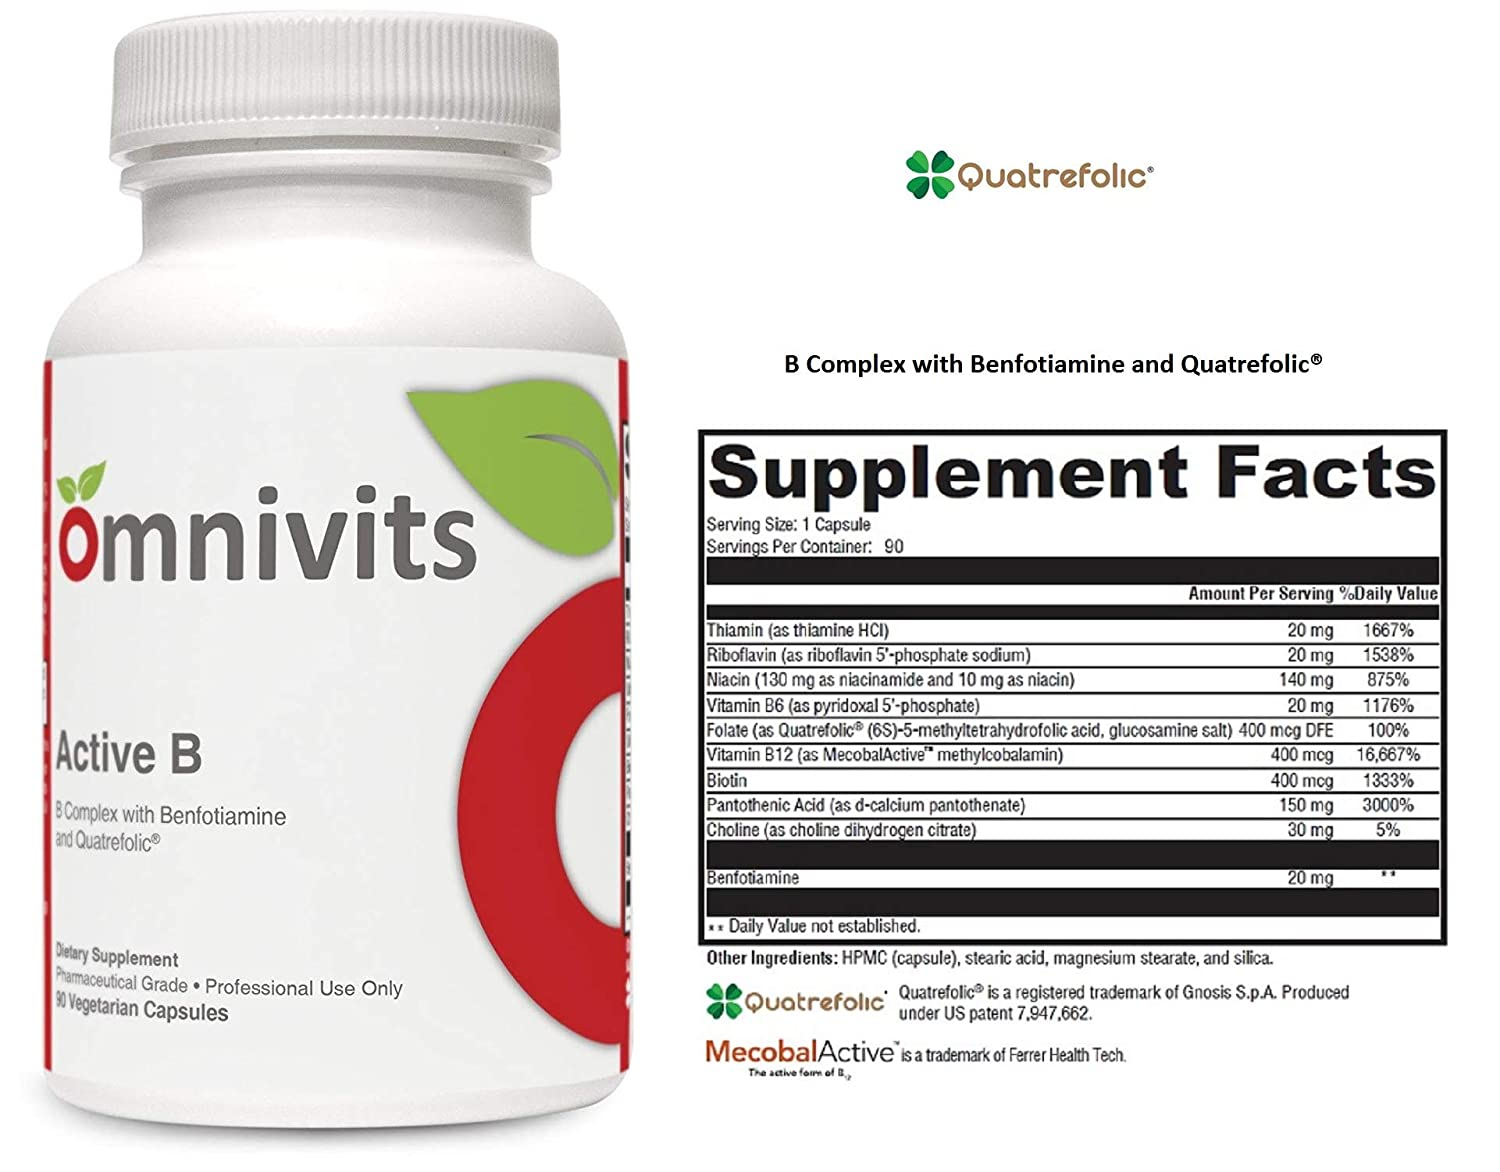 Active B | Vitamin B Complex with Benfotiamine & Folate (Quatrefolic) | Activated Forms Vitamins B2, B6 & B12 (Methylcobalamin) | Supports Cardiovascular, Adrenal, Stress-Related Functions | 90 VCaps